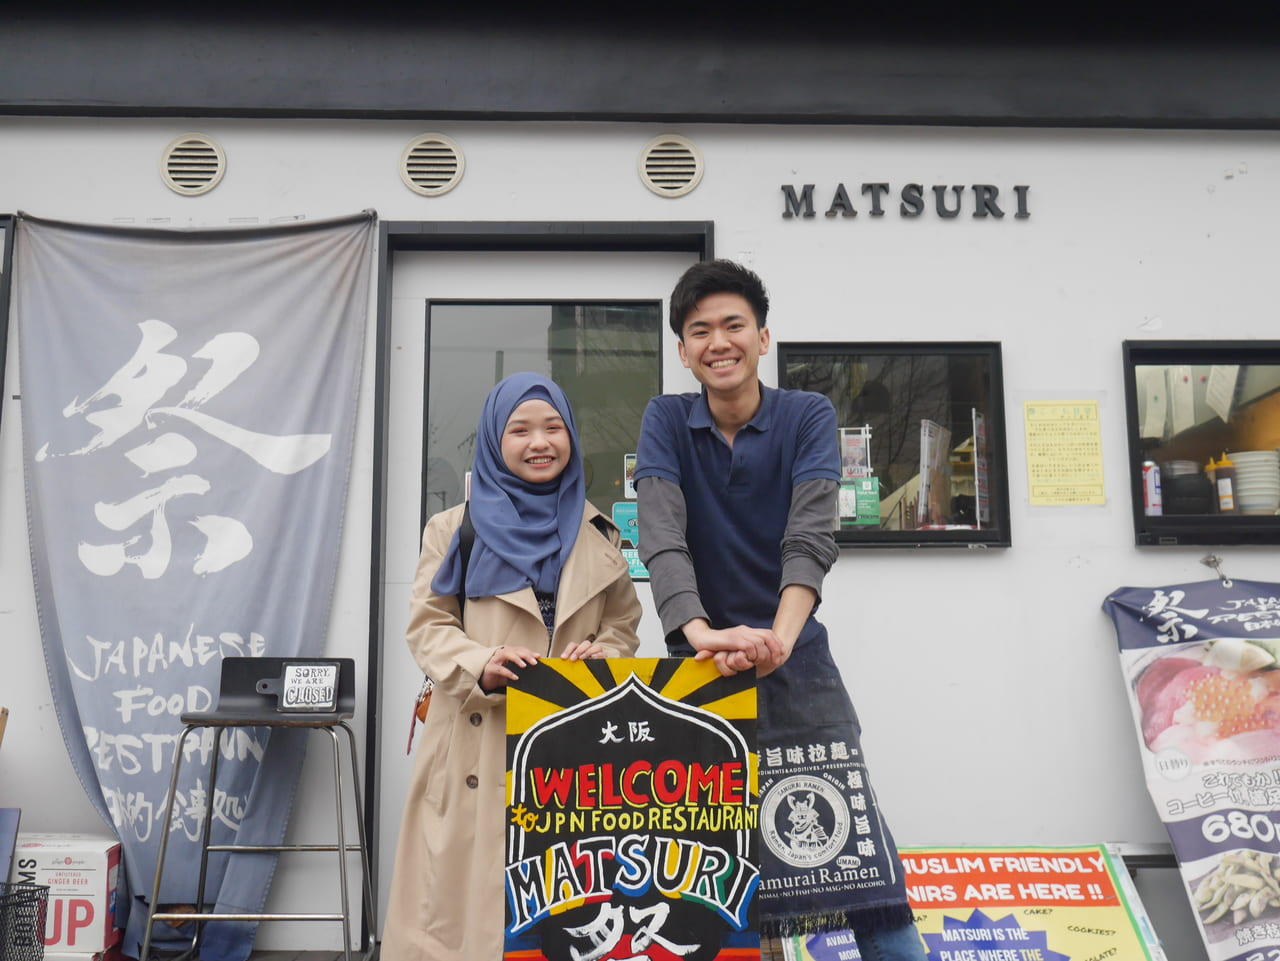 Japanese Restaurant Matsuri A One Stop To Experience The Genuine Taste Of Japanese Cuisines In Osaka Food Diversity Today